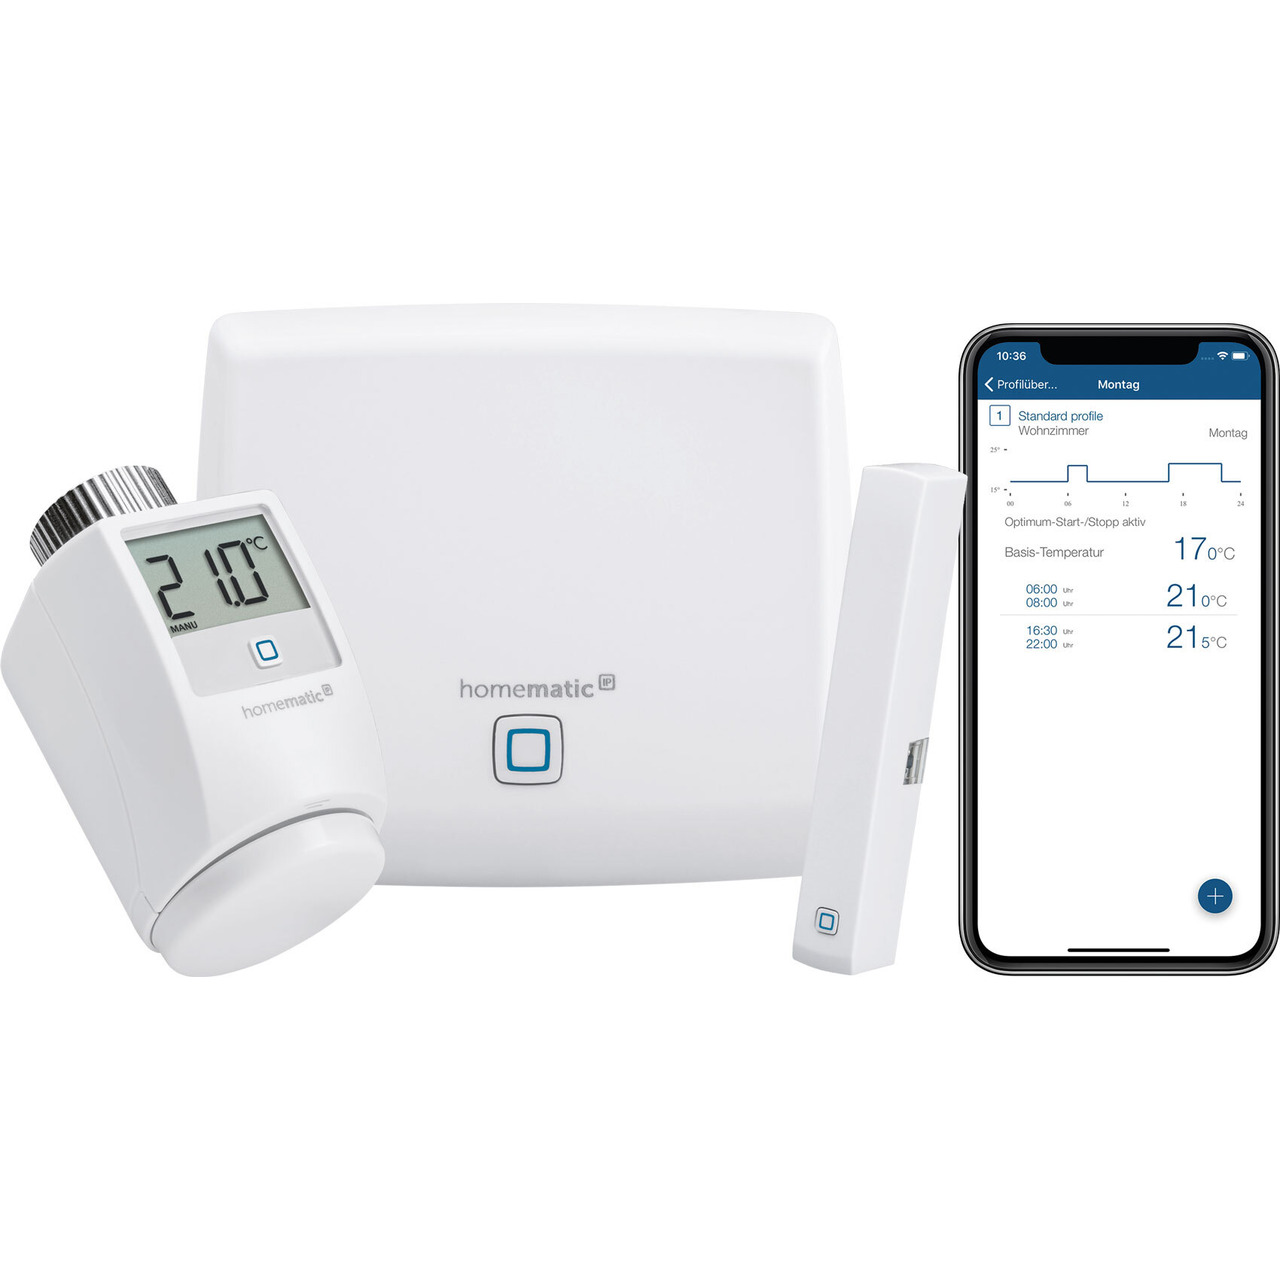 Homematic IP Starter Set Raumklima mit Access Point- Heizkörperthermostat und Fensterkontakt